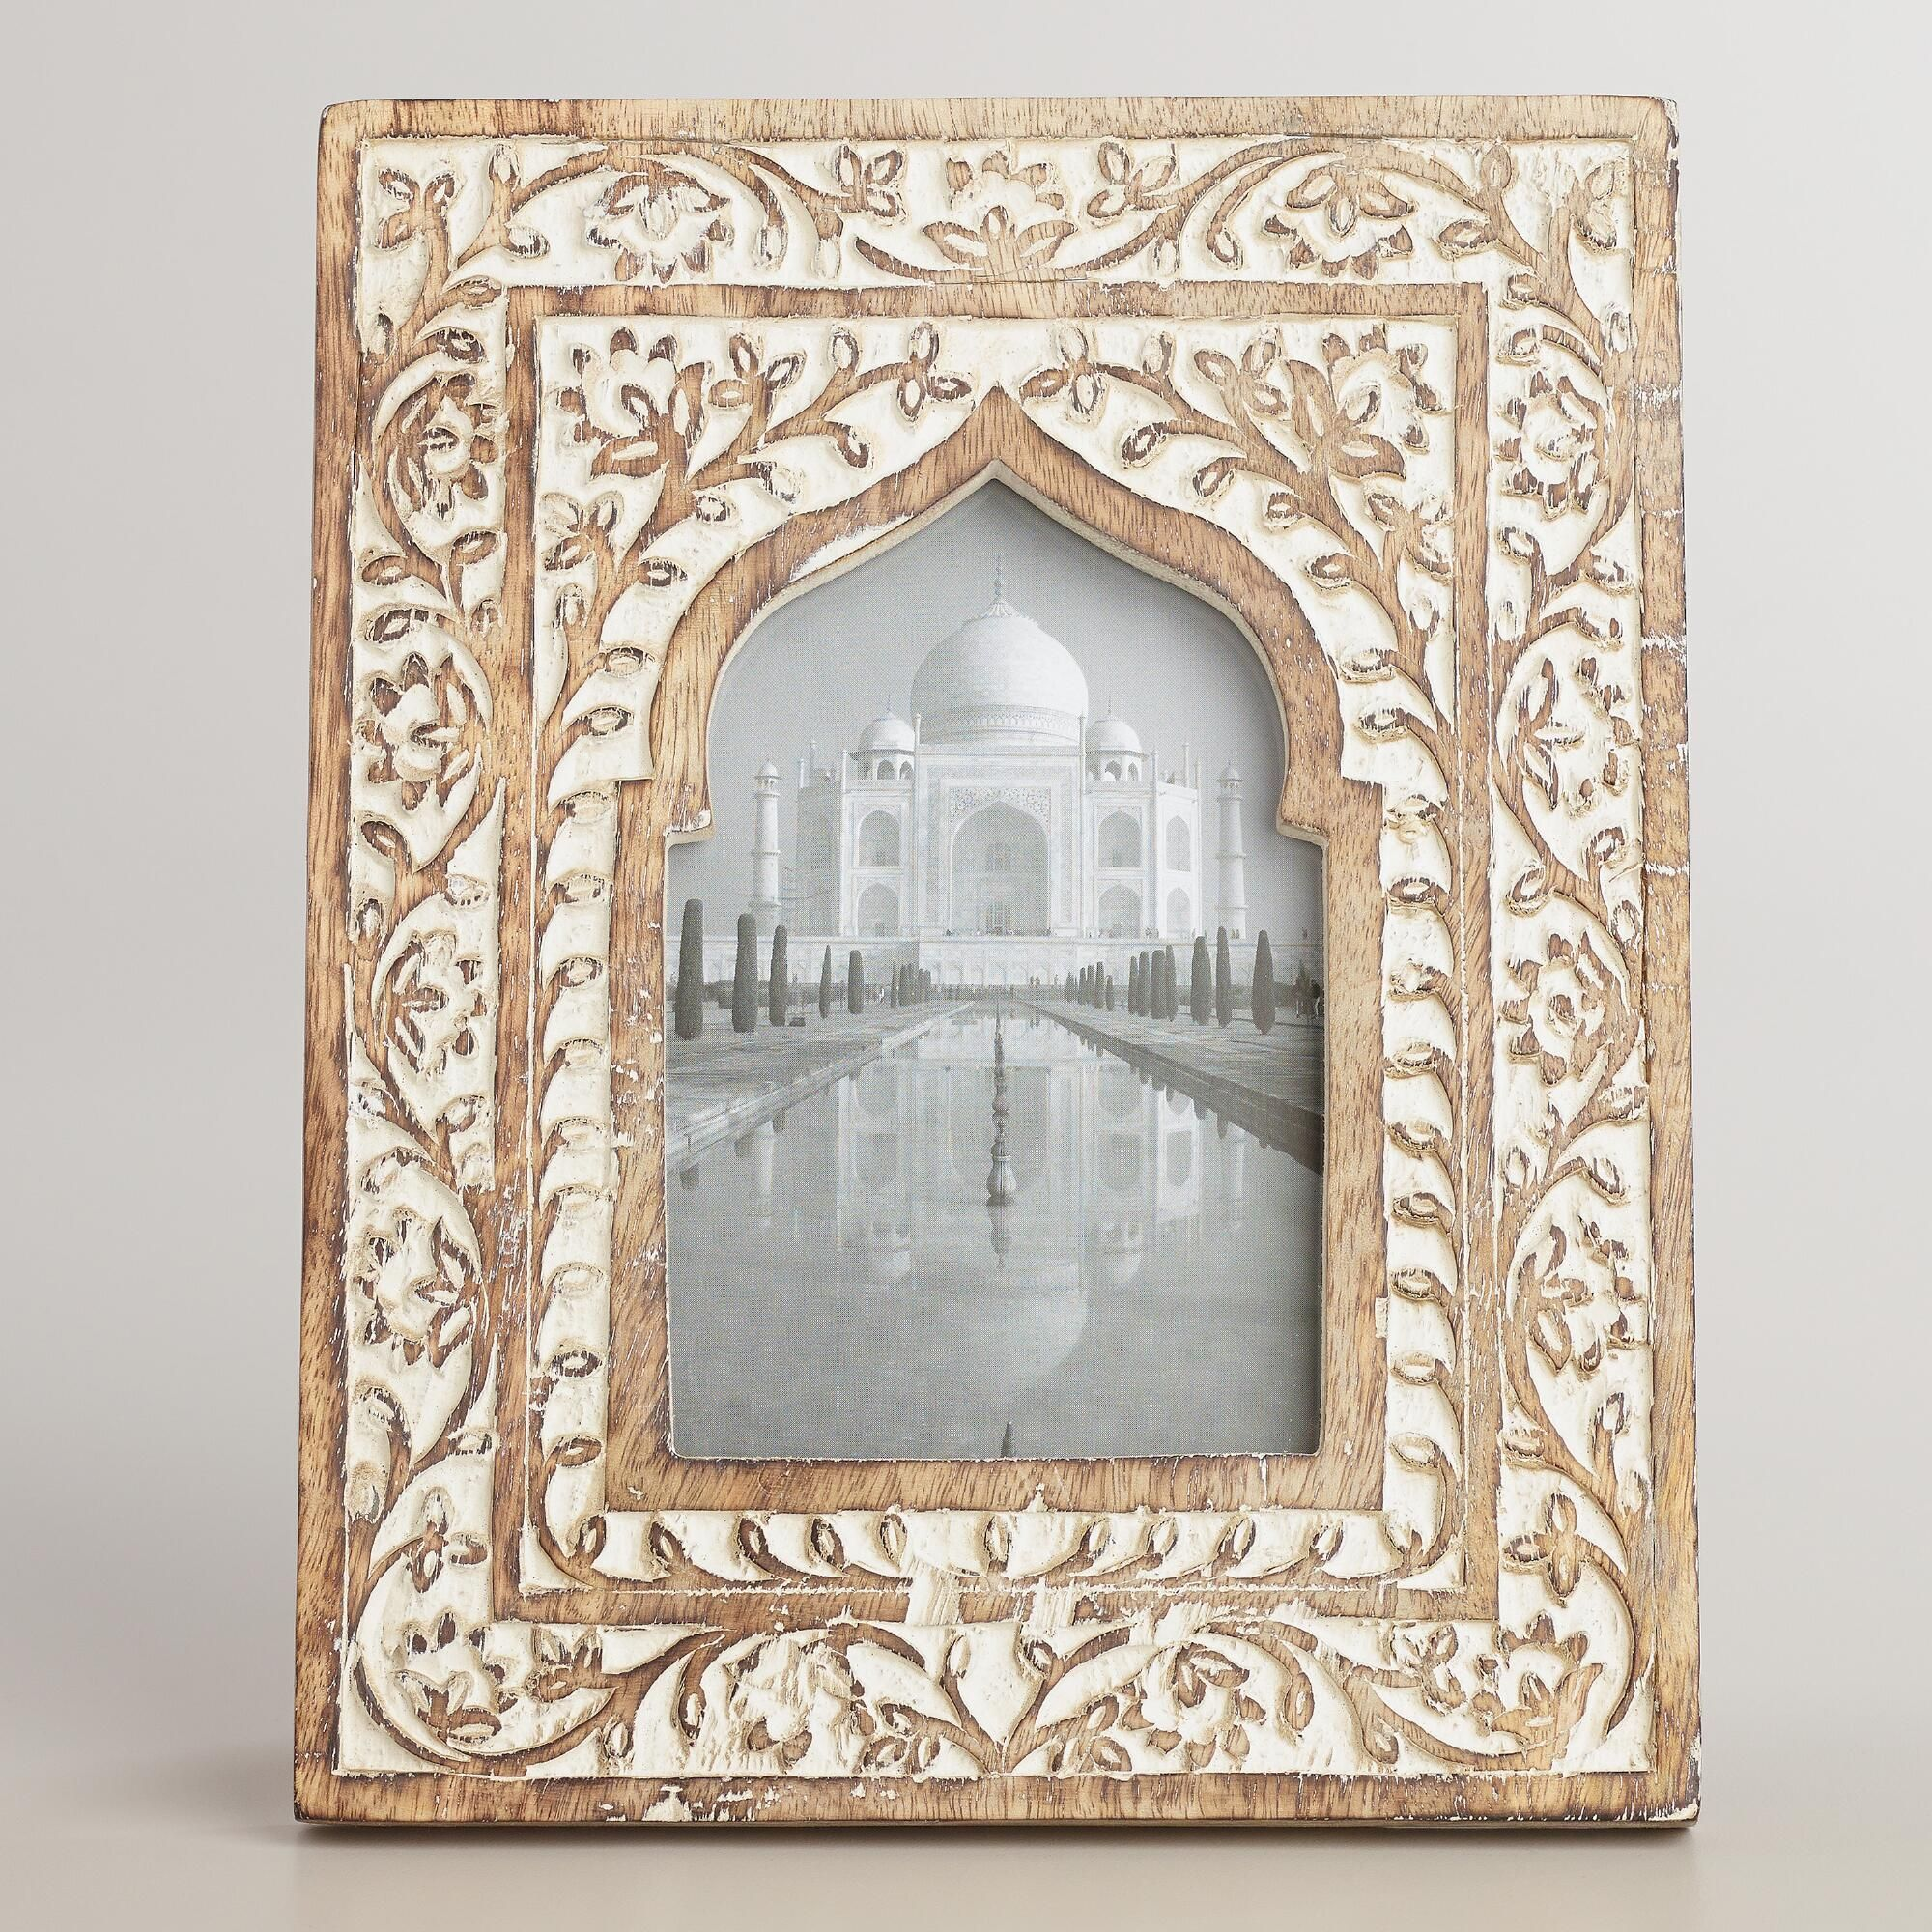 entry - at hinge and box for thermostat and keys: White Wooden Taj ...